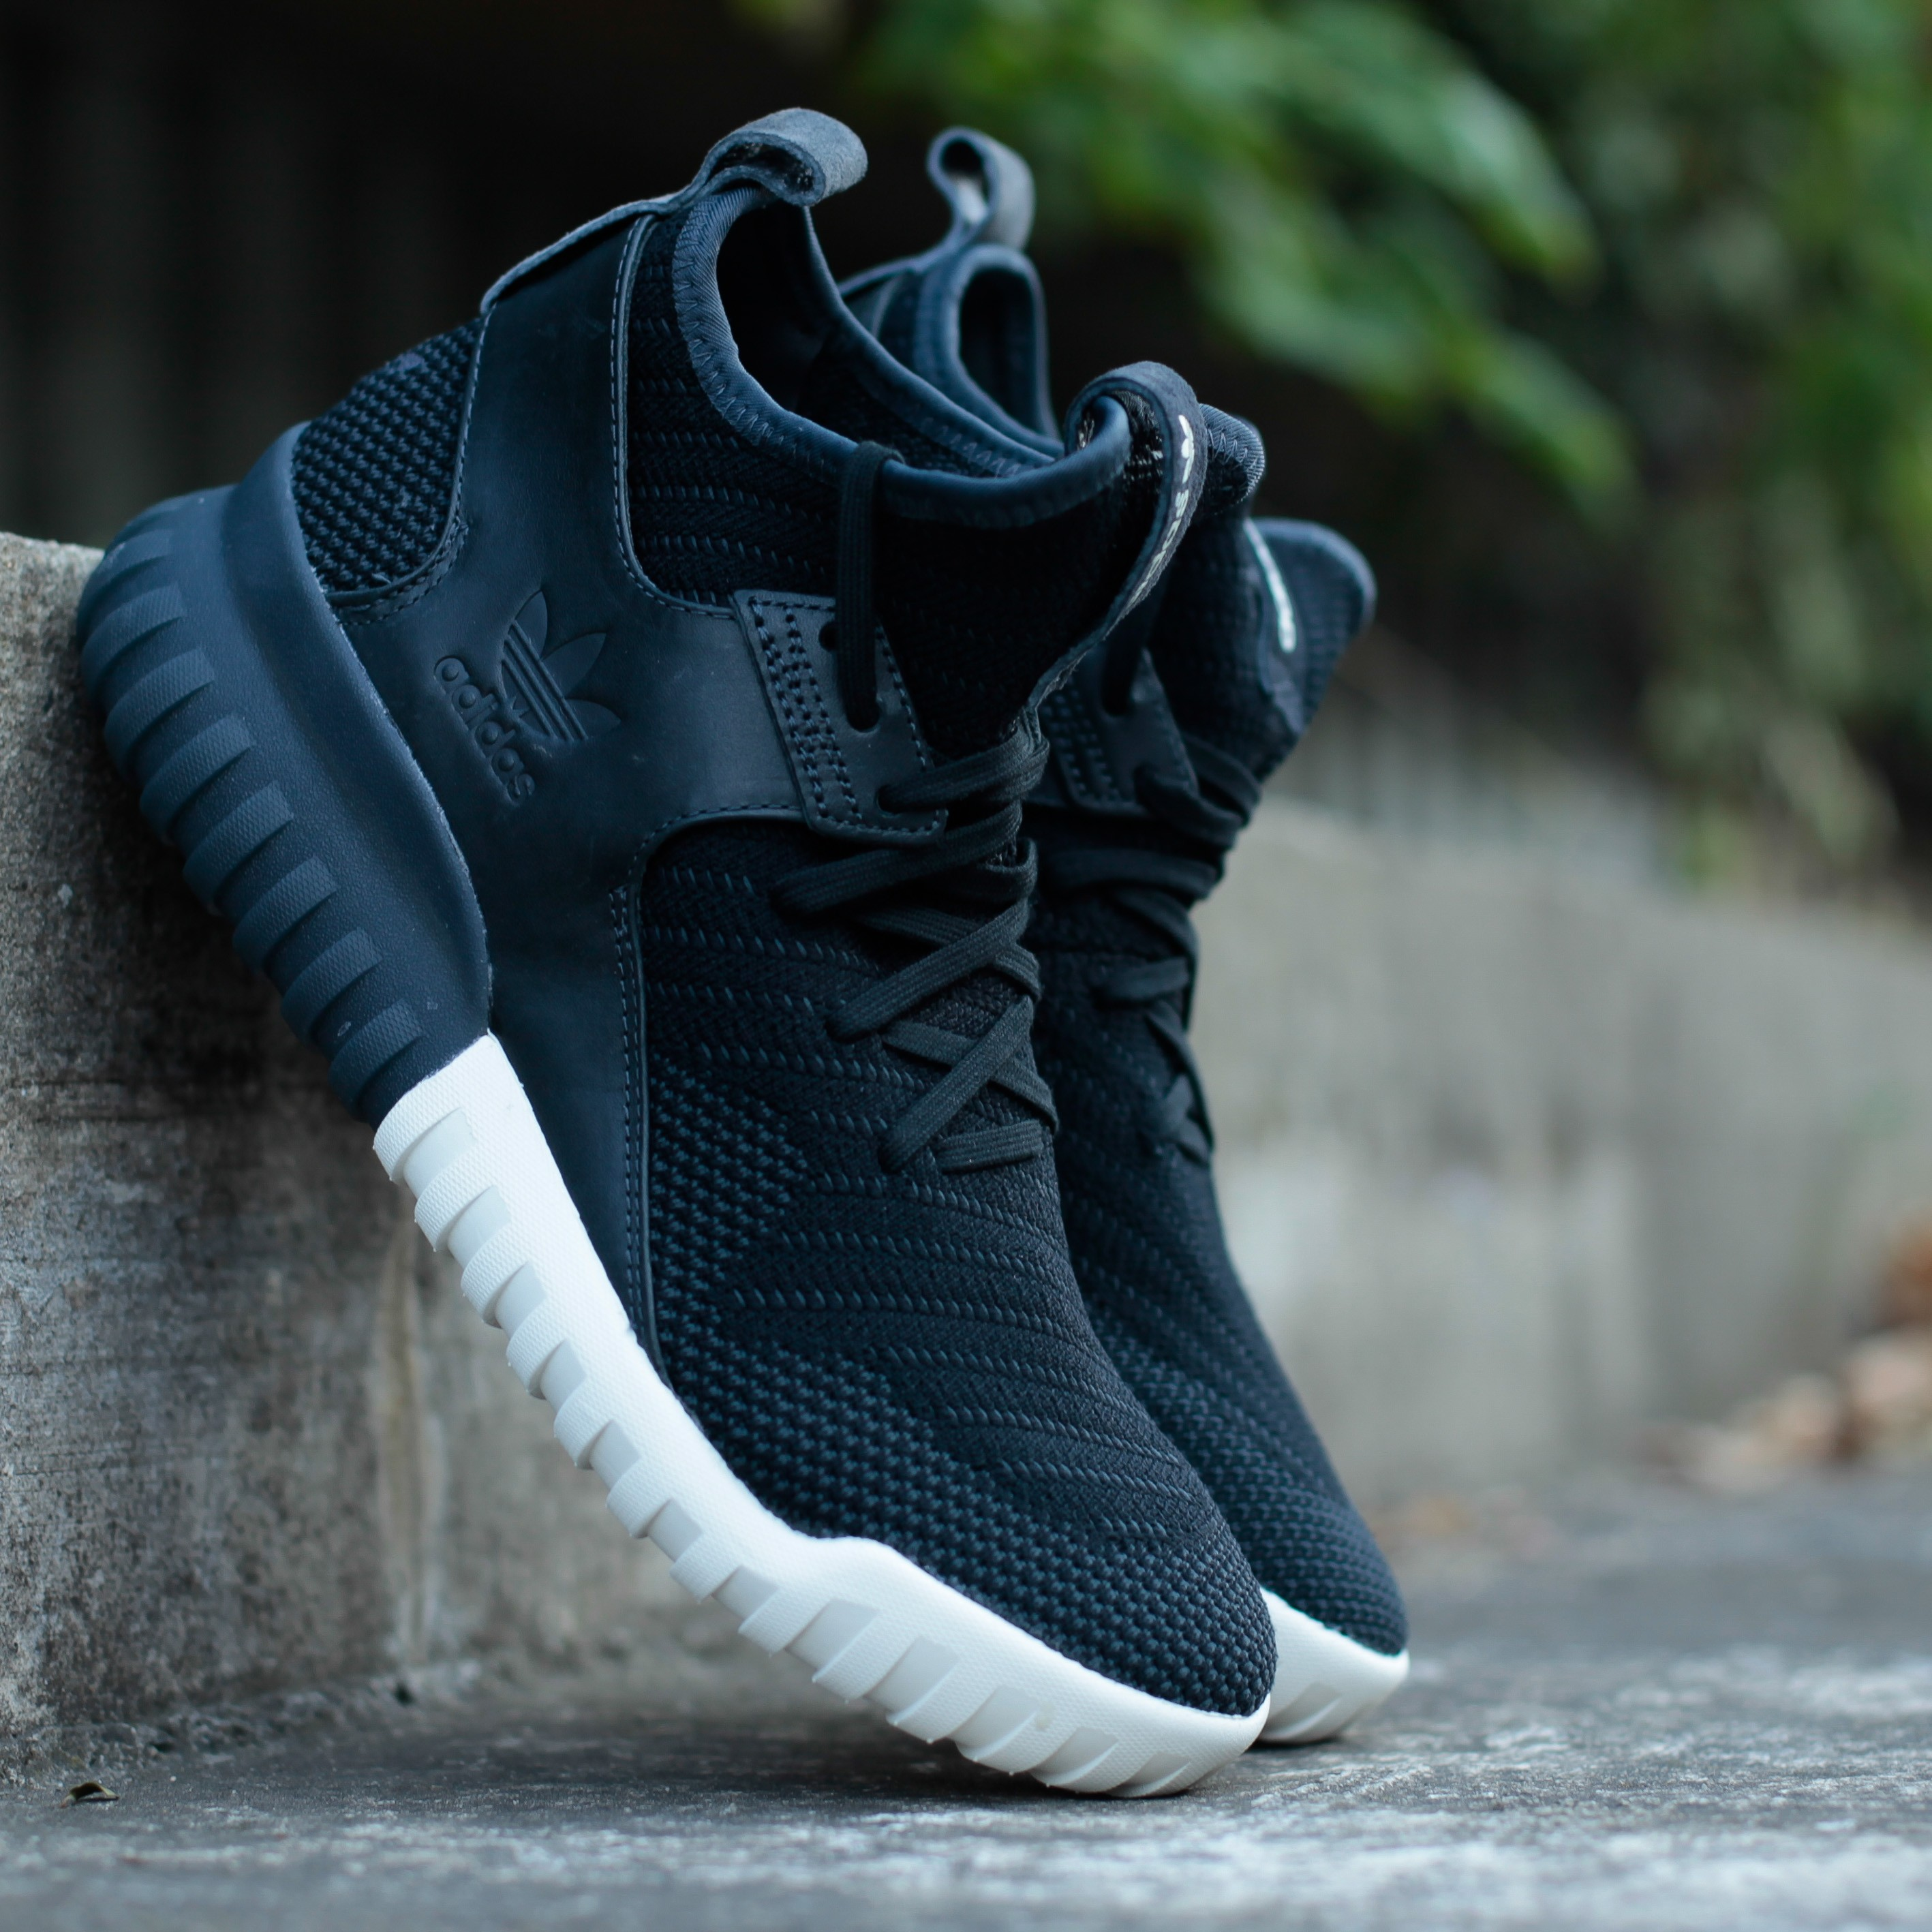 adidas Tubular X Knit Core Black  Carbon  Dgsogr  d9a27b7697